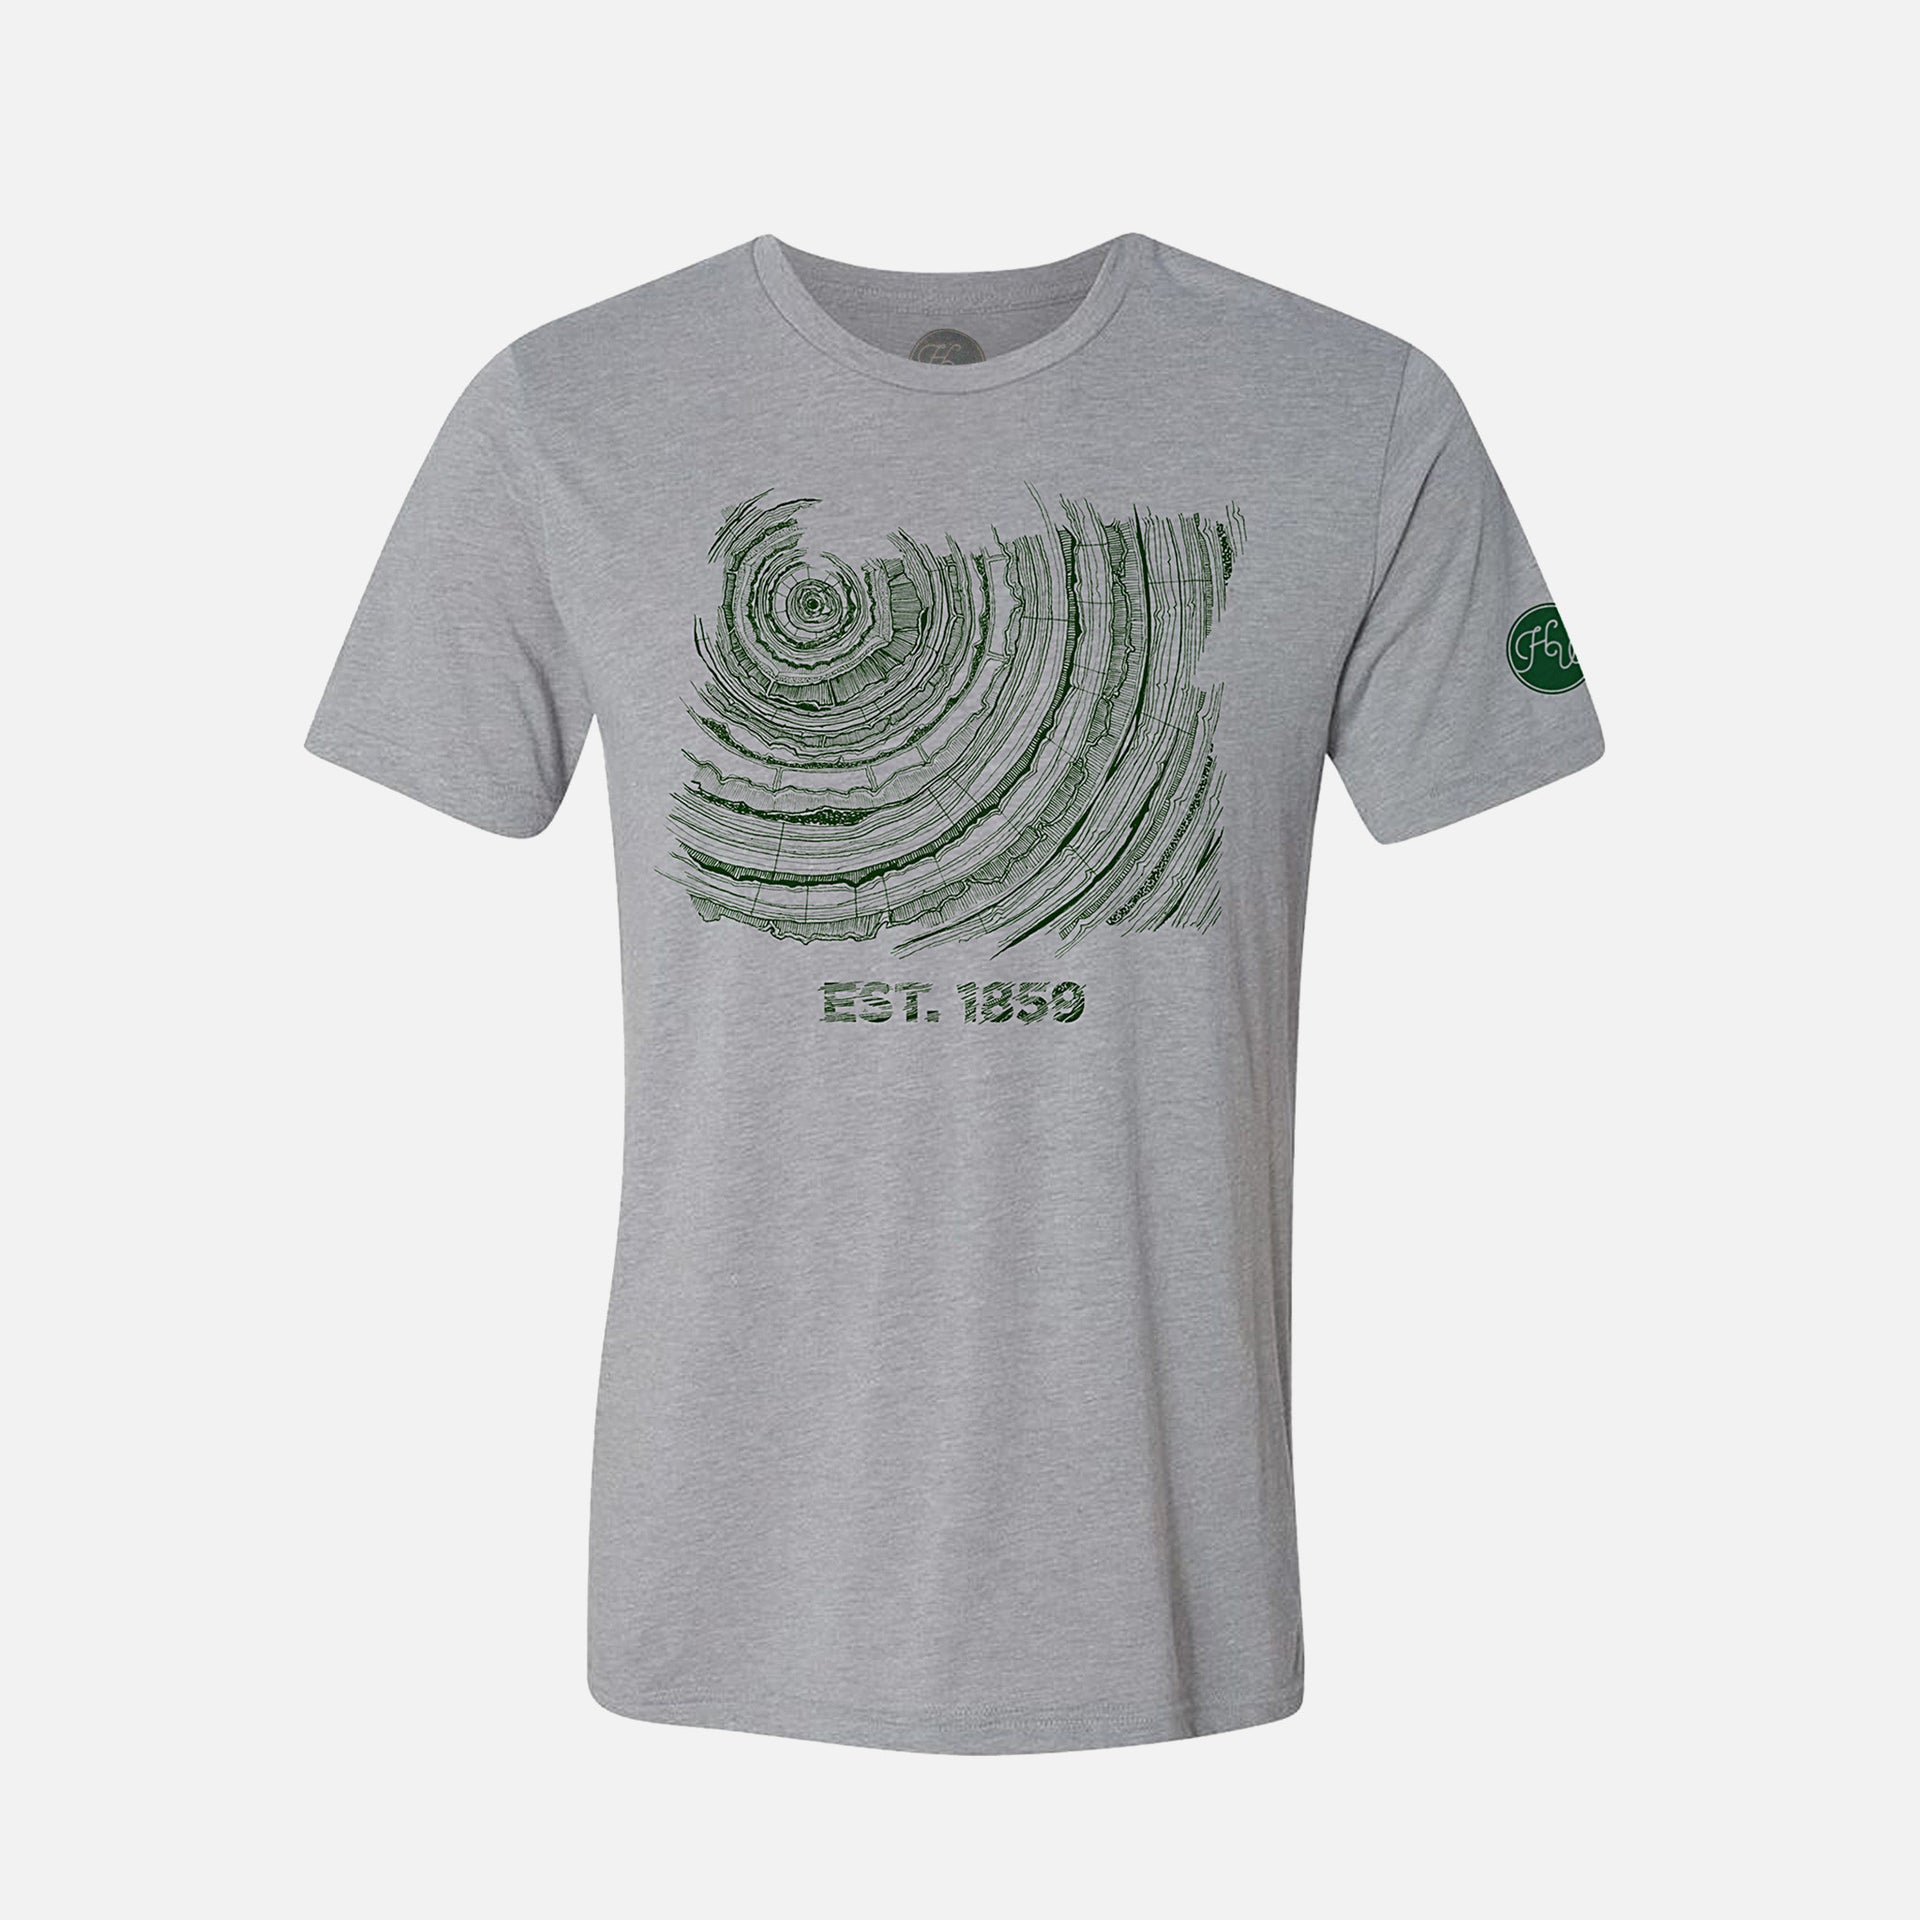 Oregon Tree Rings Hipster Shirt Since 1859